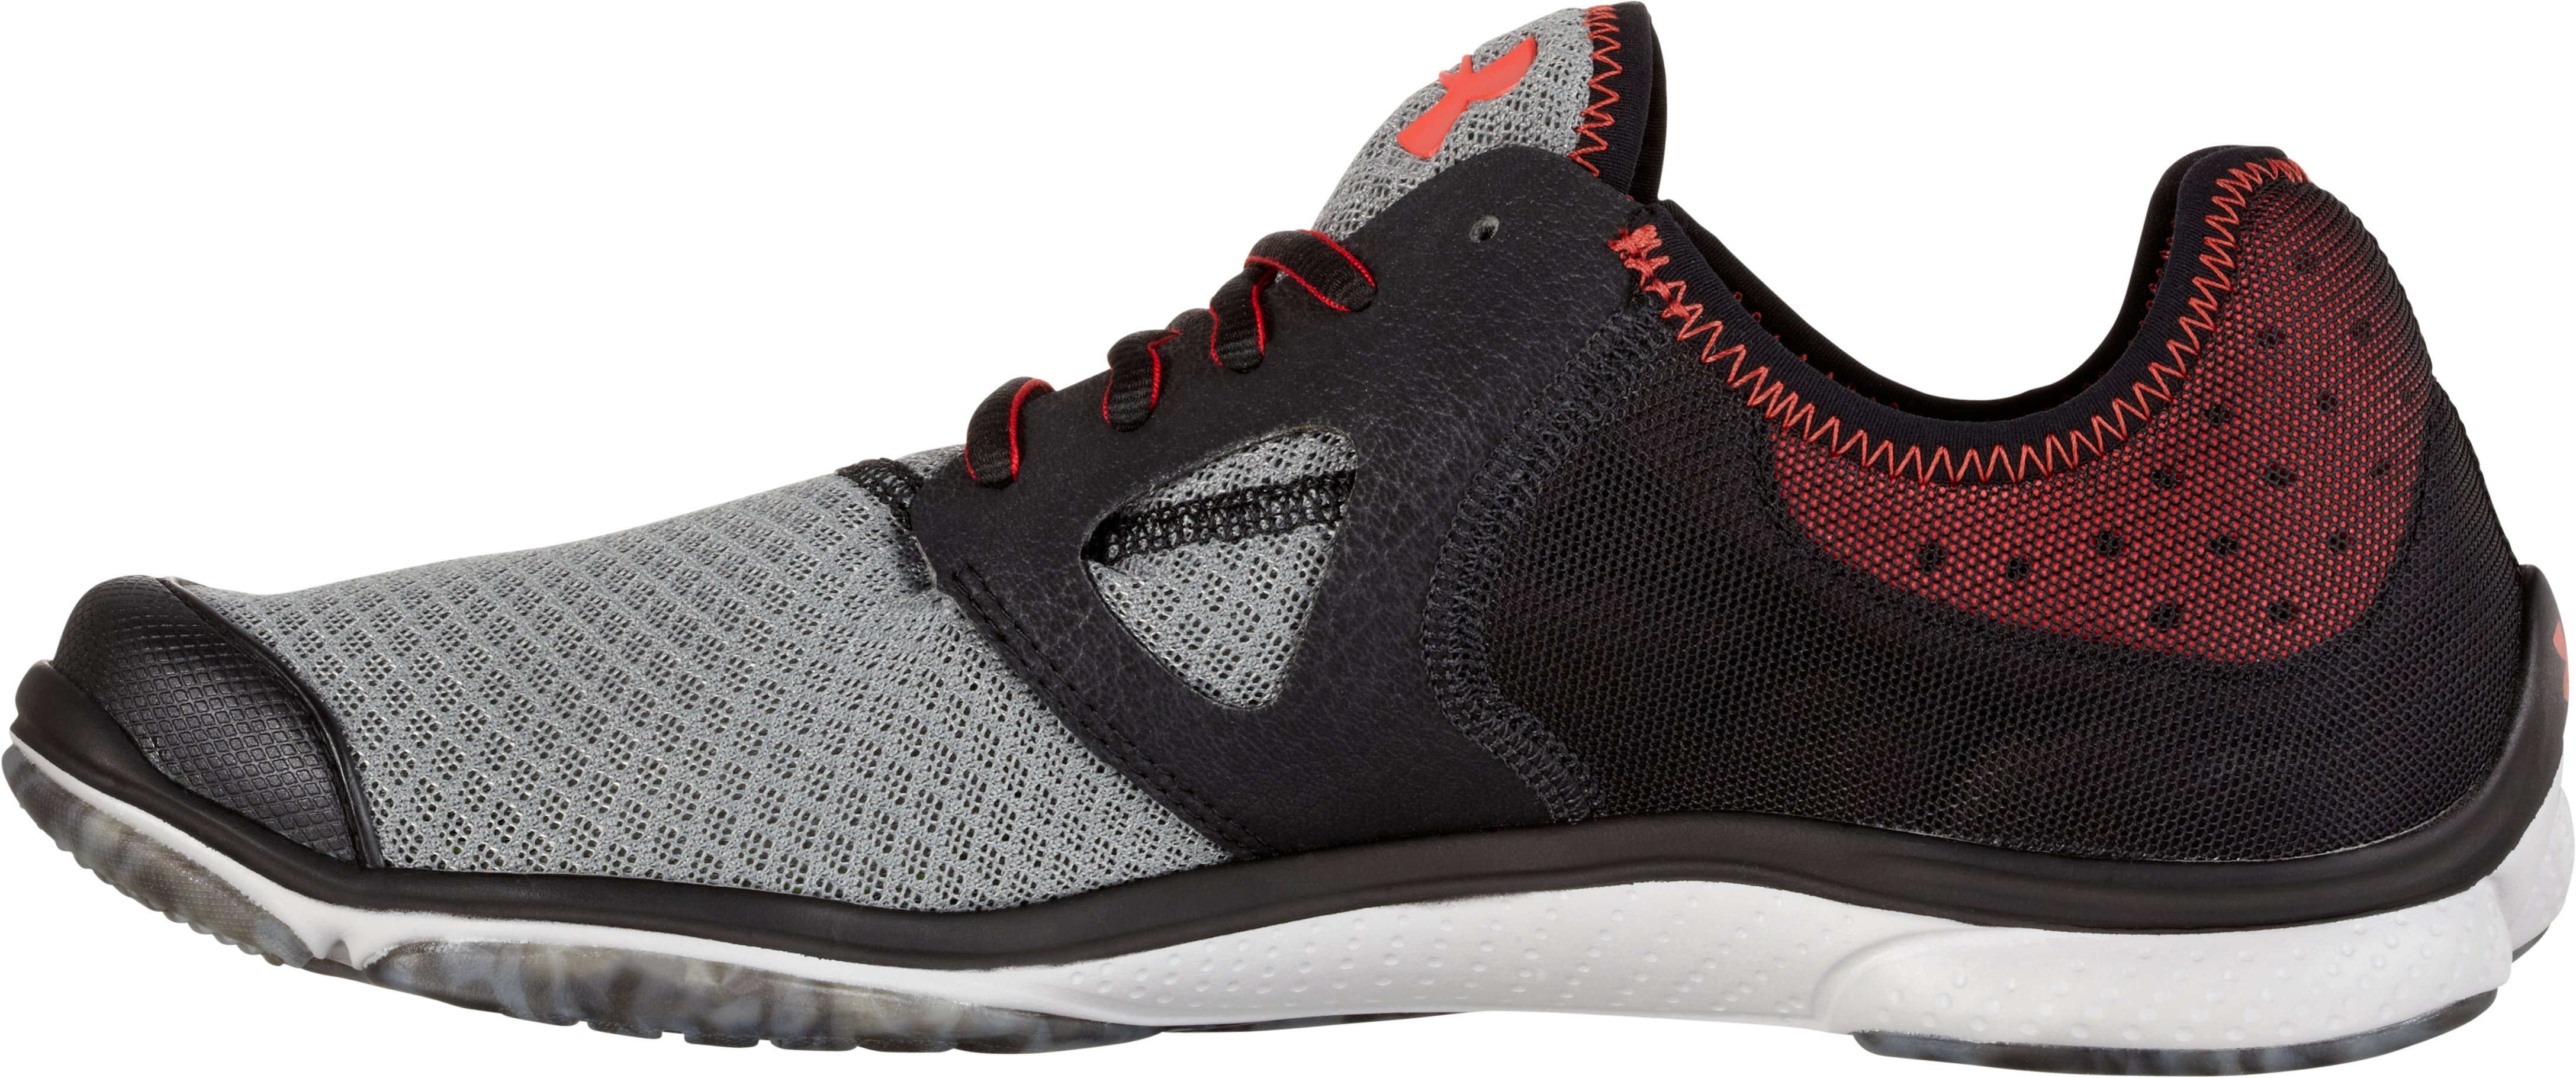 Men's UA Toxic Outdoor Trail Running Shoes, Black